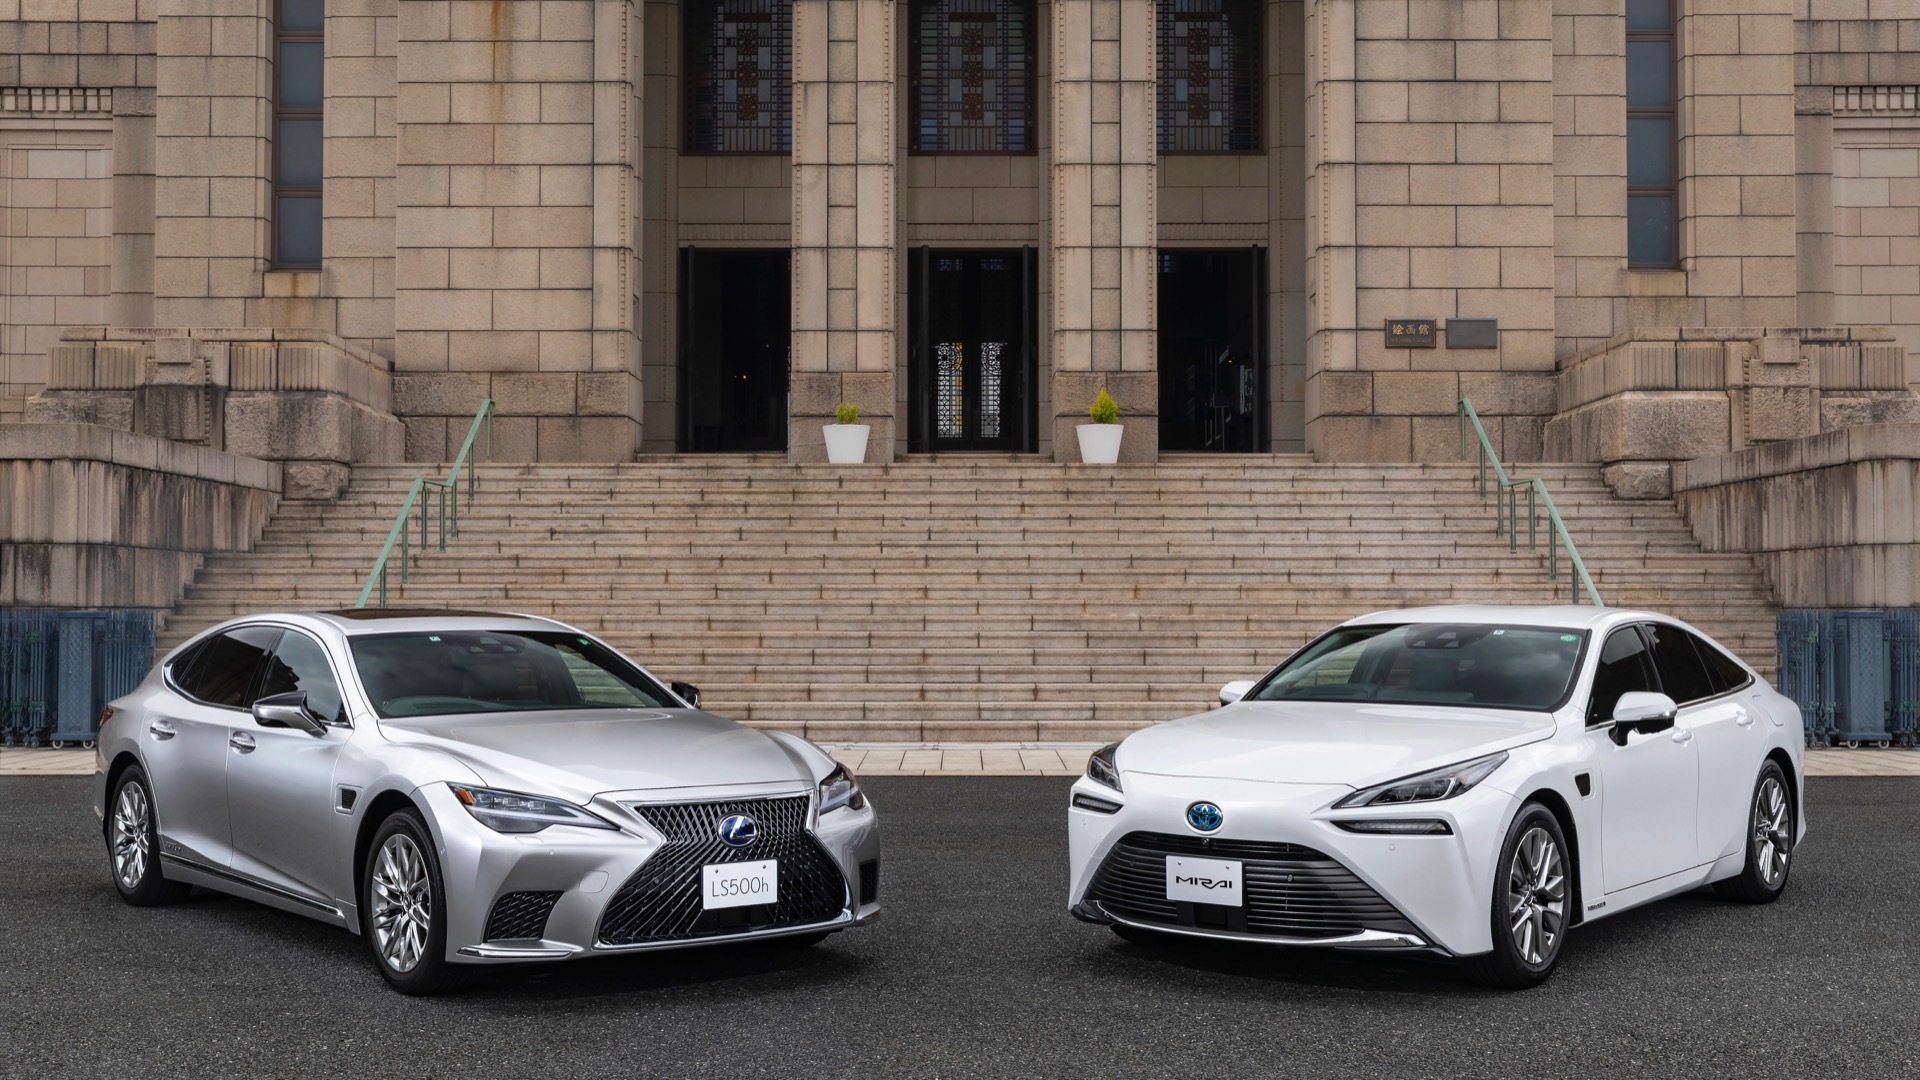 2022 Lexus LS 500h and 2022 Toyota Mirai with Teammate